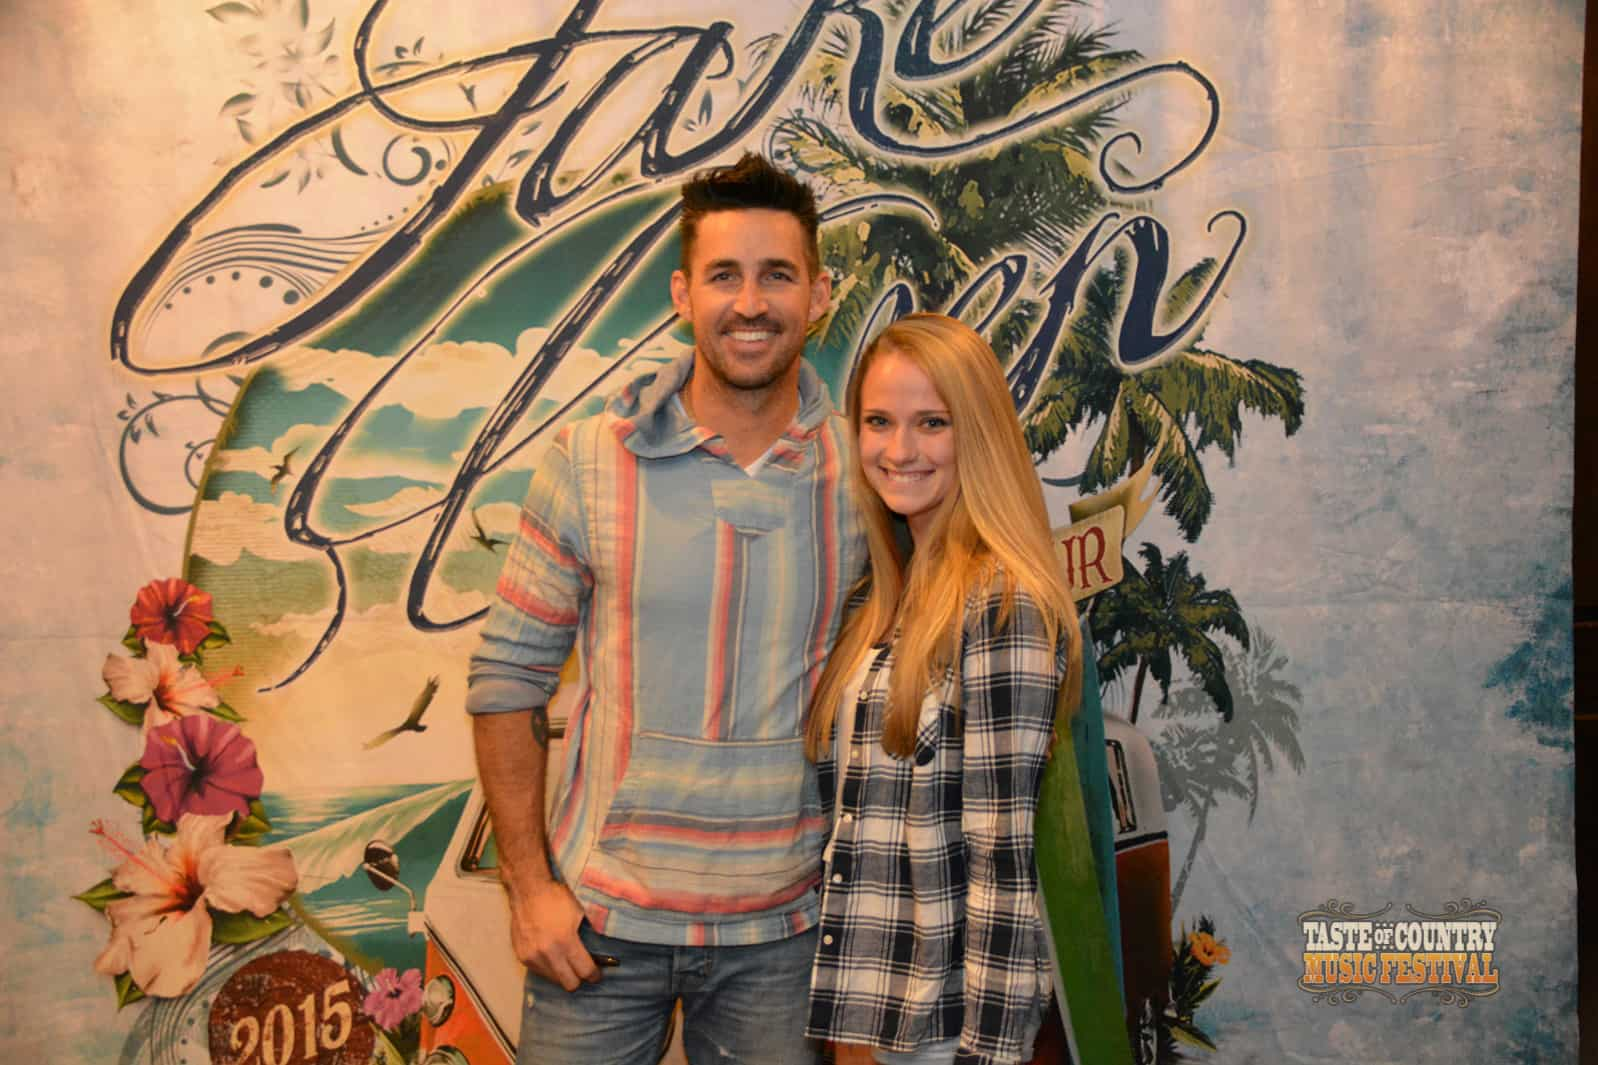 Photos meet and greet with jake owen taste of country meet and greet with jake owen at taste of country music festival 2016 m4hsunfo